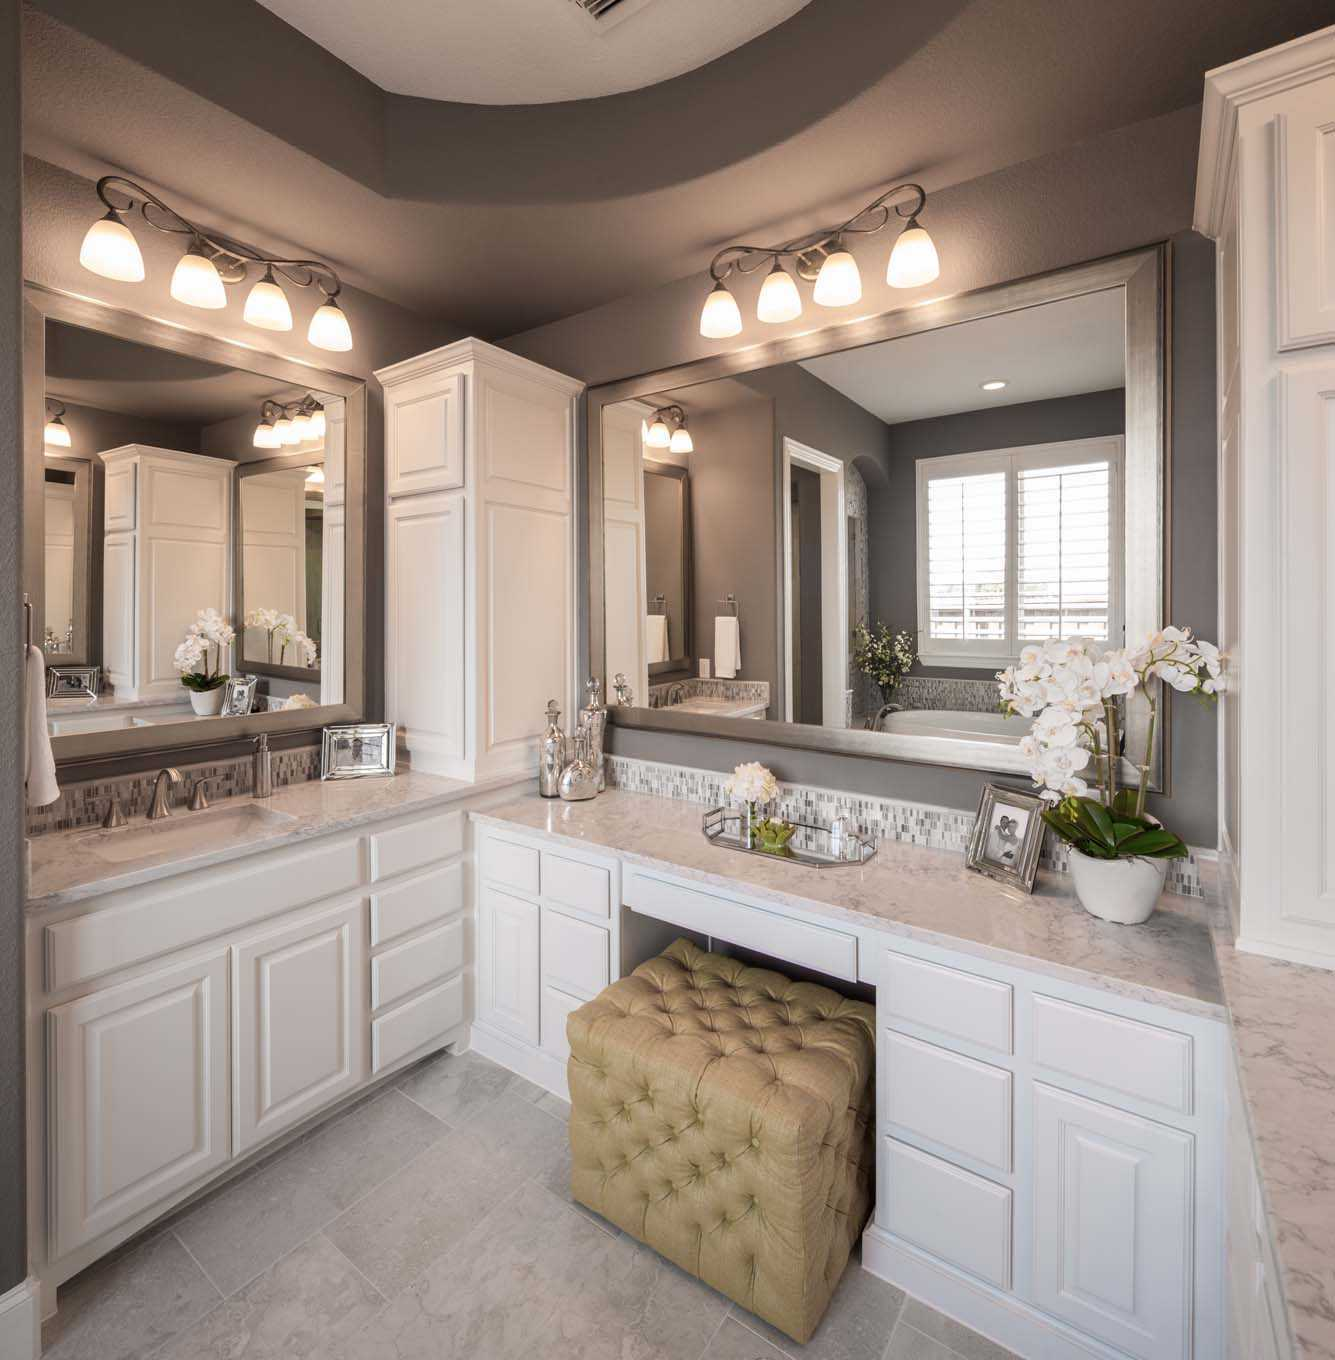 Bathroom featured in the Plan 292 By Highland Homes in Houston, TX